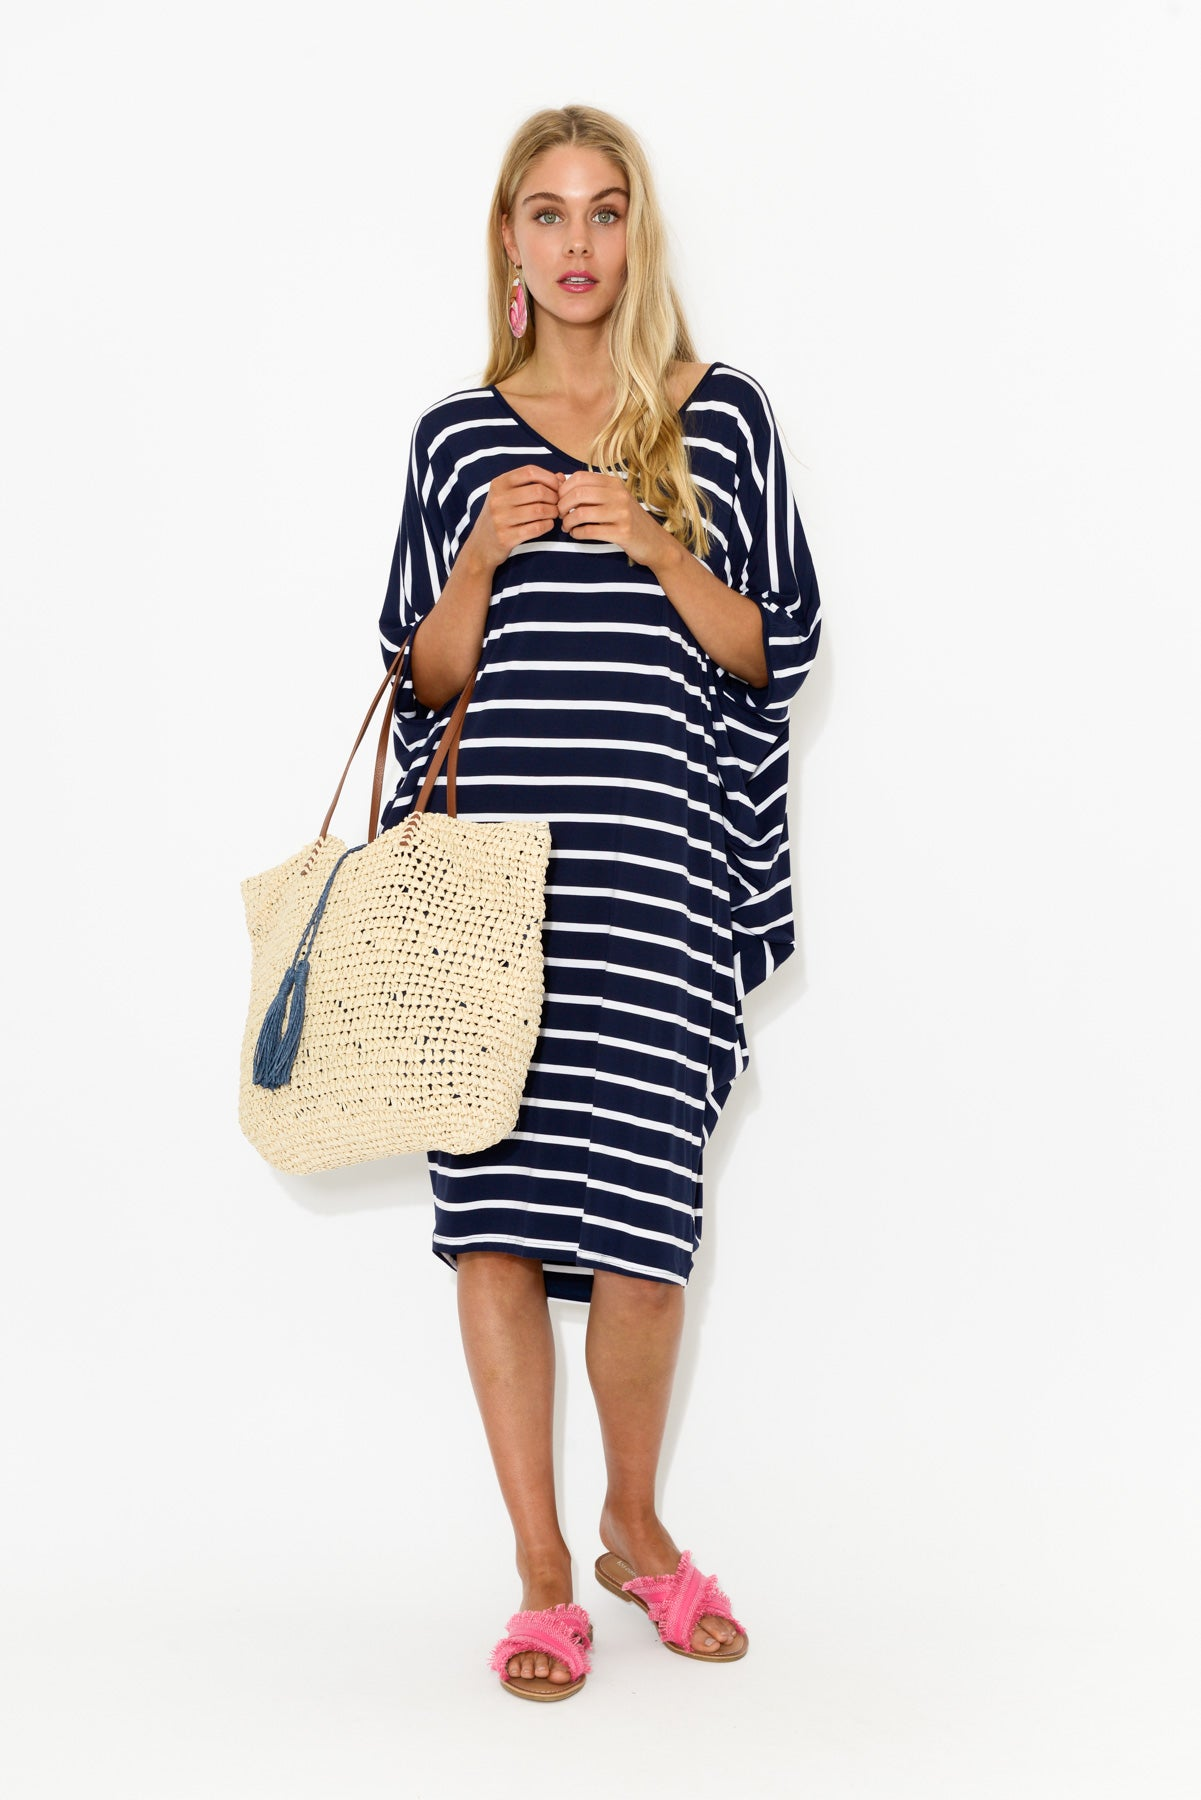 Freya Navy Stripe Batwing Dress - Blue Bungalow